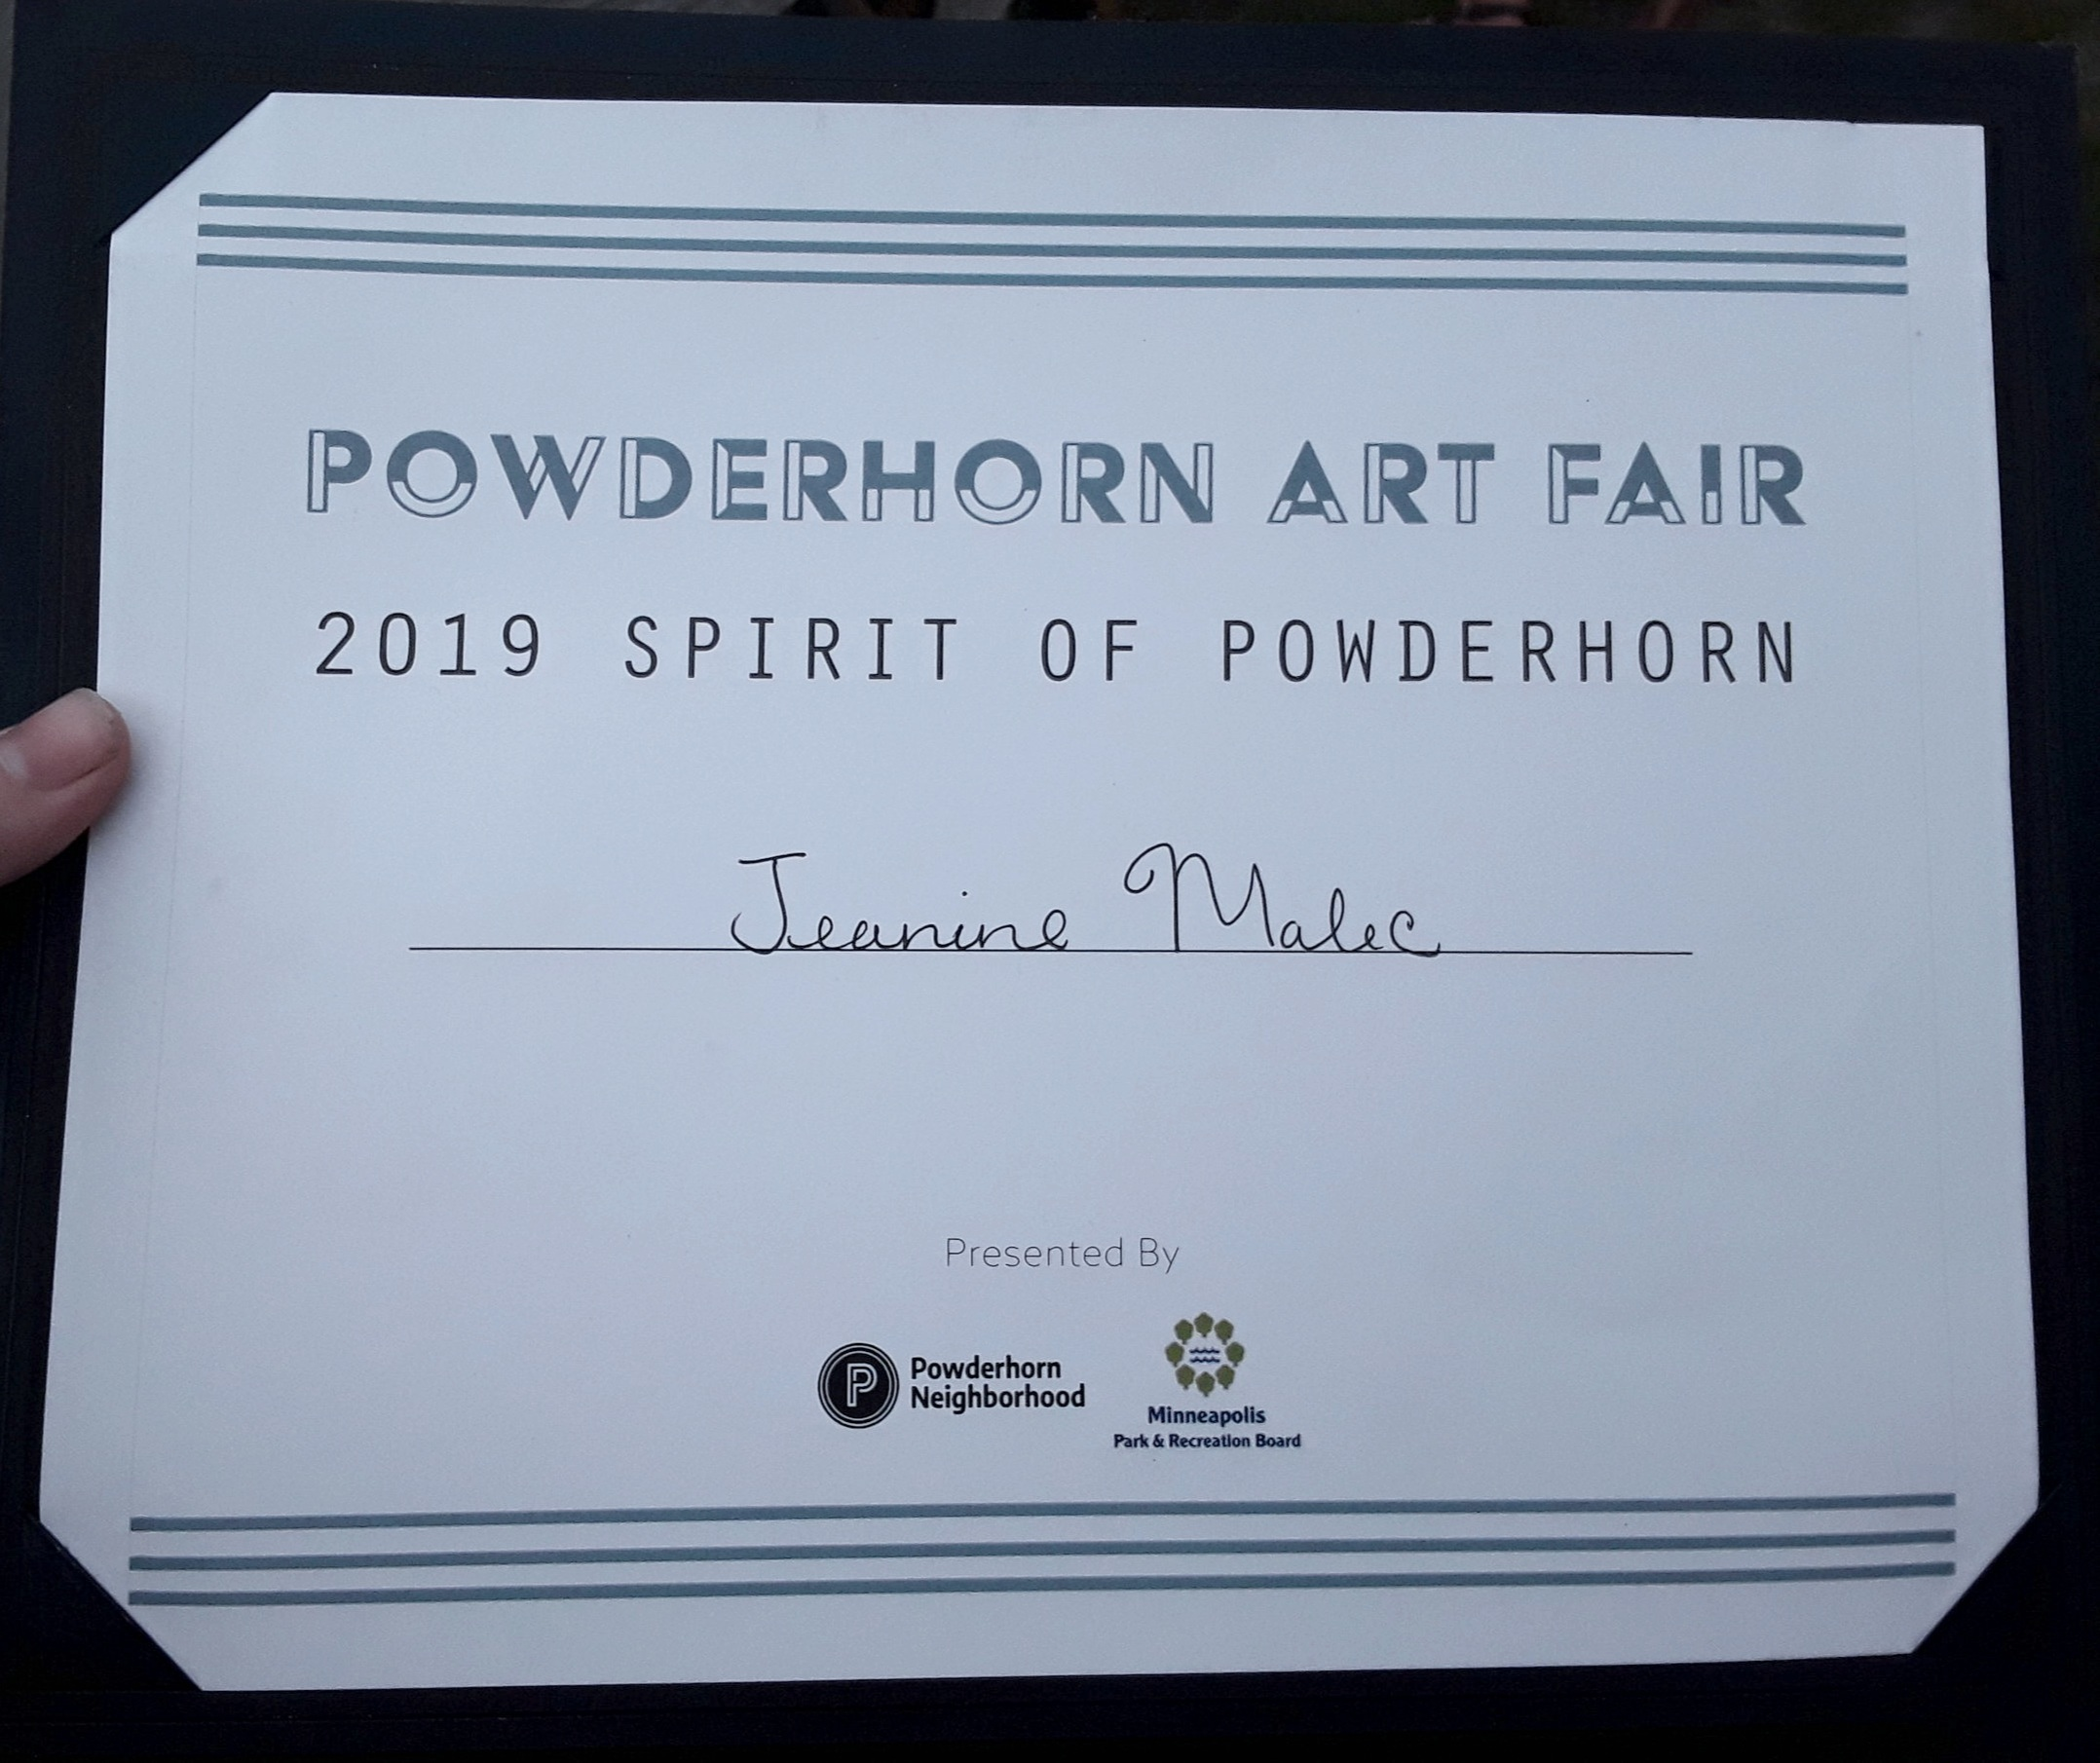 Thanks to the organizers and judges of the Powderhorn Art Fair for the great honor of being selected for the Spirit of Powderhorn award at this year's event! The park to me is the jewel of the neighborhood, and everyone who passes through has a story to share about how this place has touched their lives. @powderhornart is where I get to see all my neighbors together in community, so much gratitude for this experience!